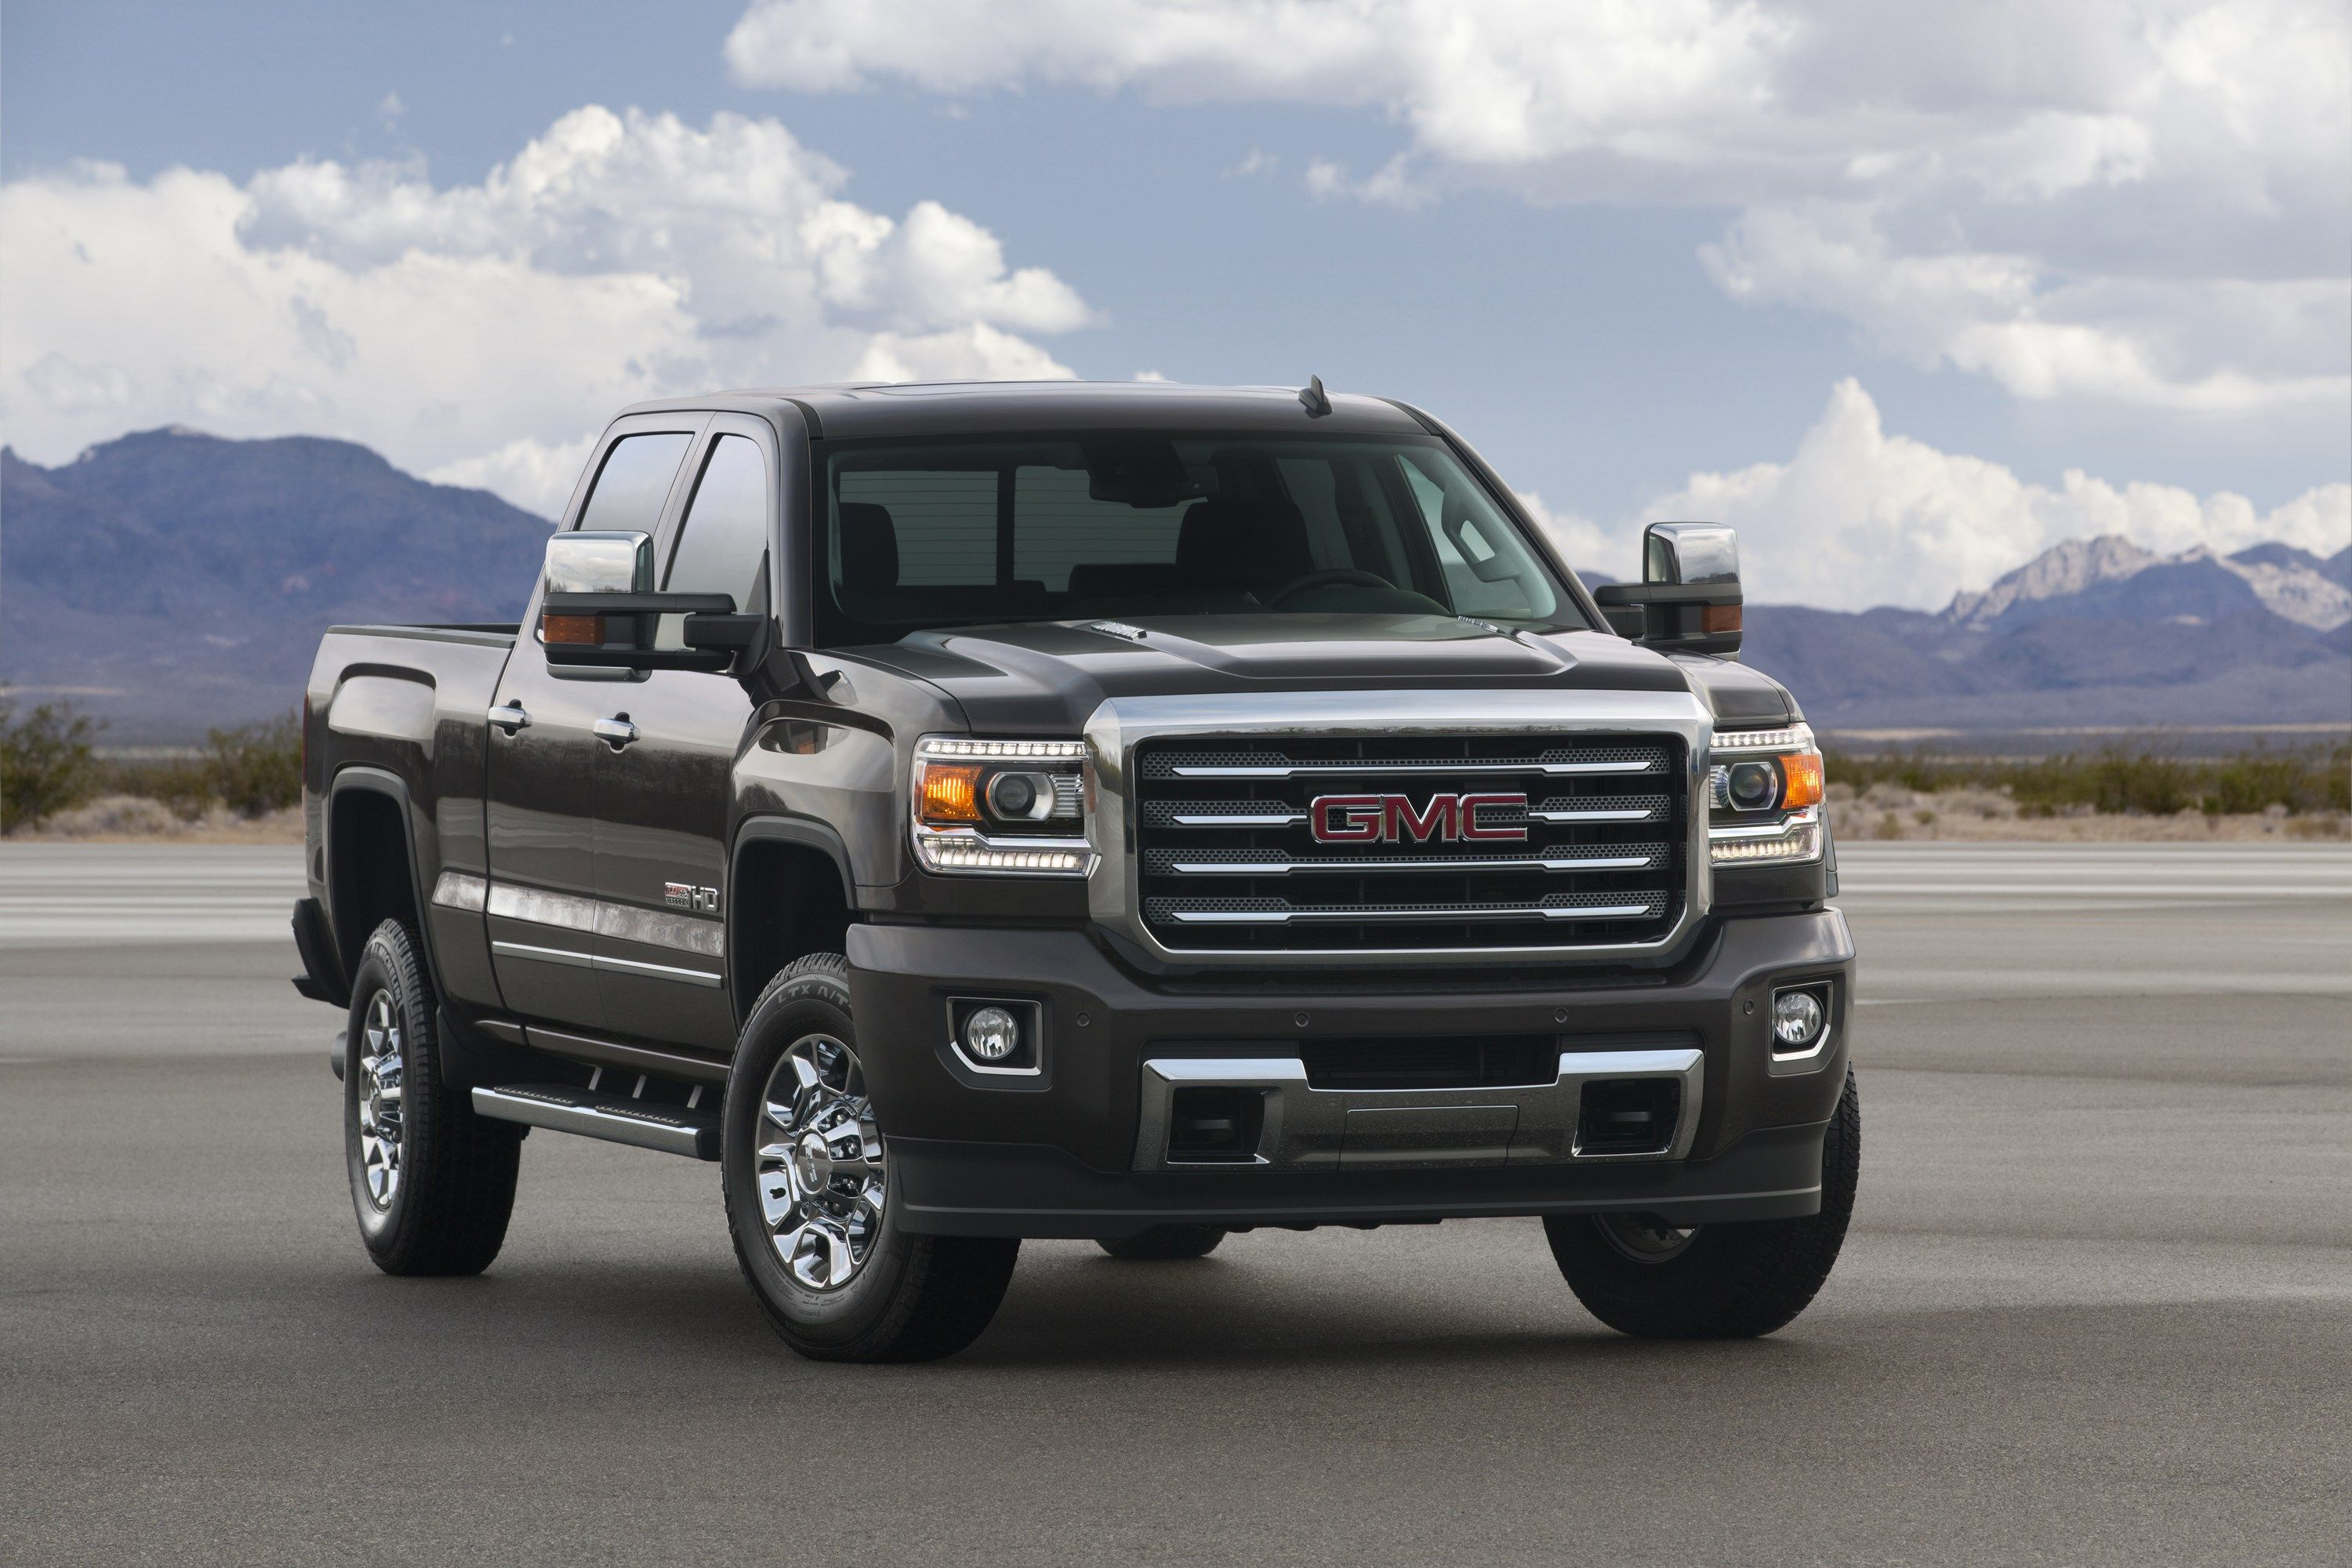 2020 Gmc Denali 3500hd Concept Engine Specs Updates And Price New Car Rumor